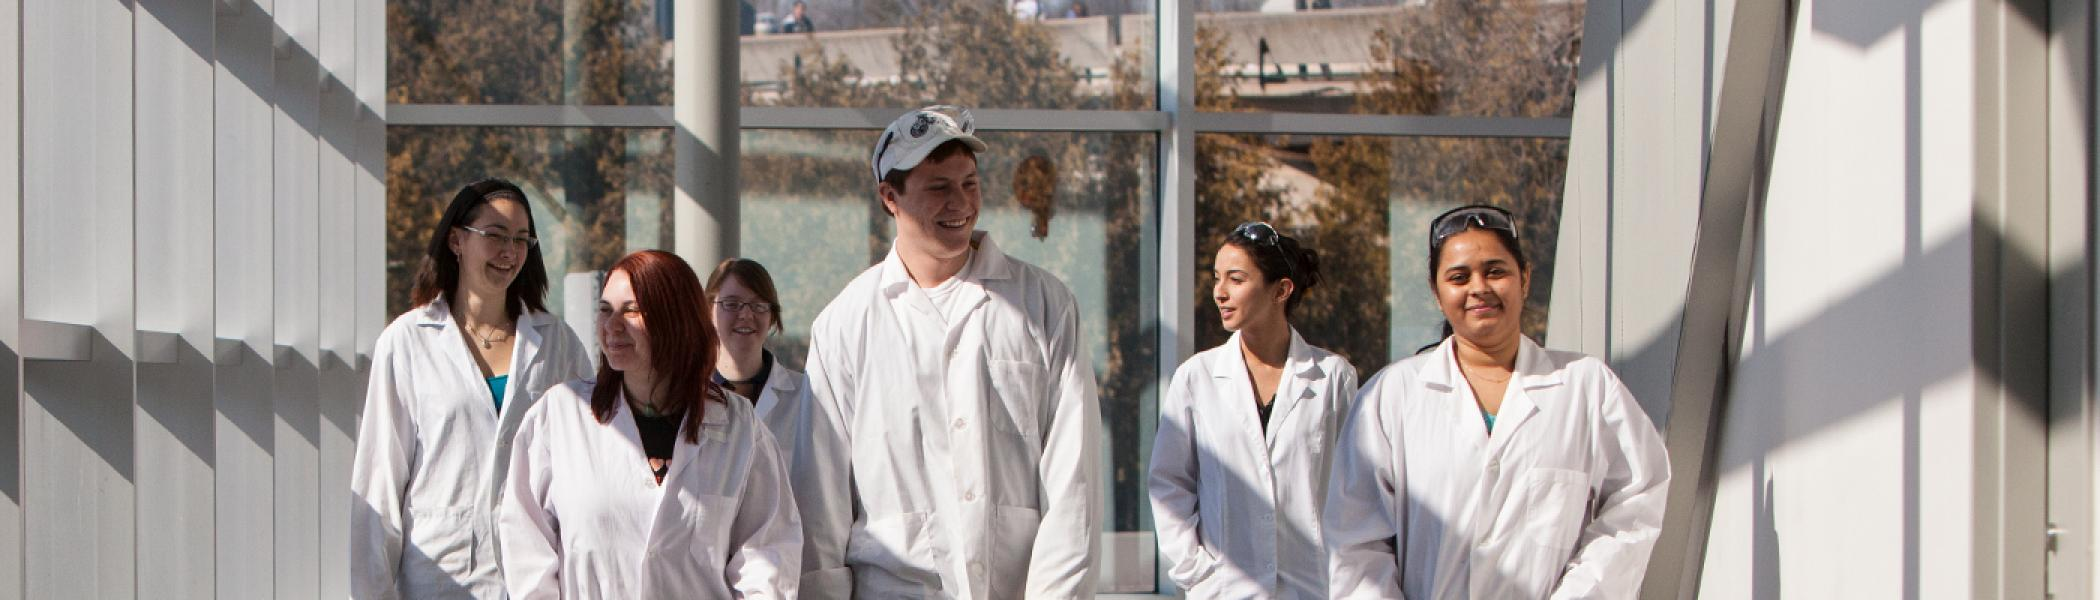 5 students walking along a hallway in white labcoats